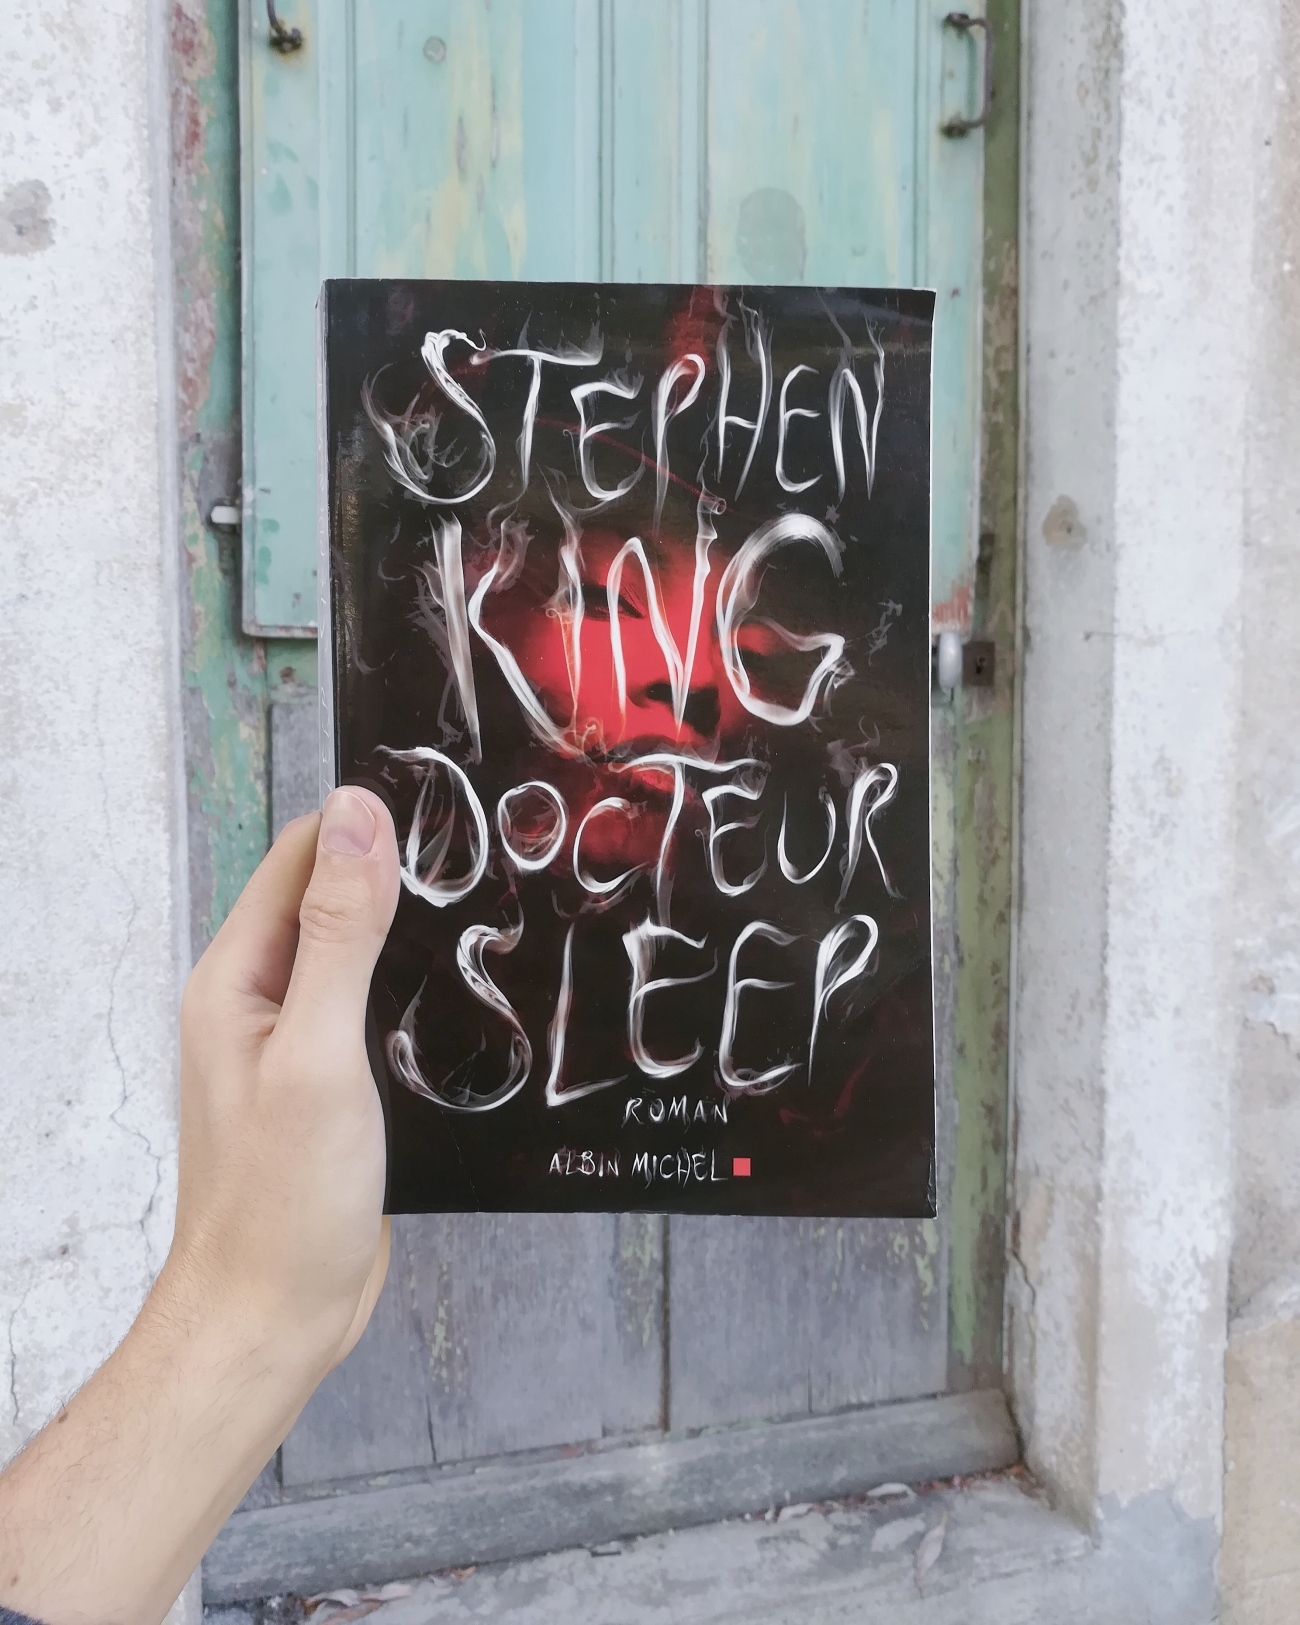 avis-tomabooks-docteur-sleep-stephen-king